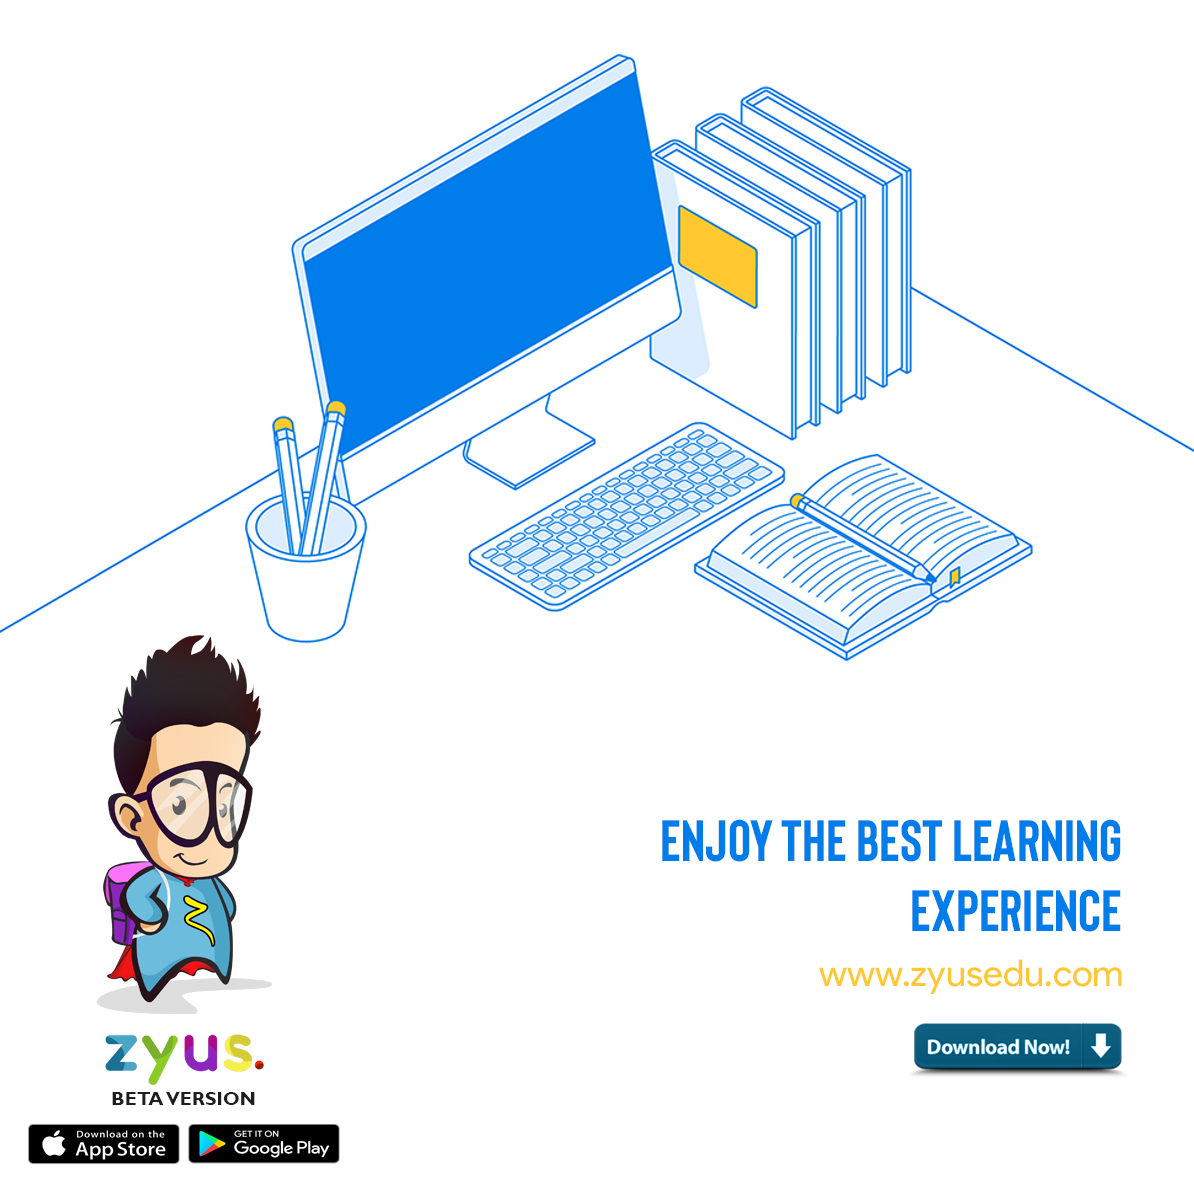 Enjoy the best learning experience. Download Zyus today